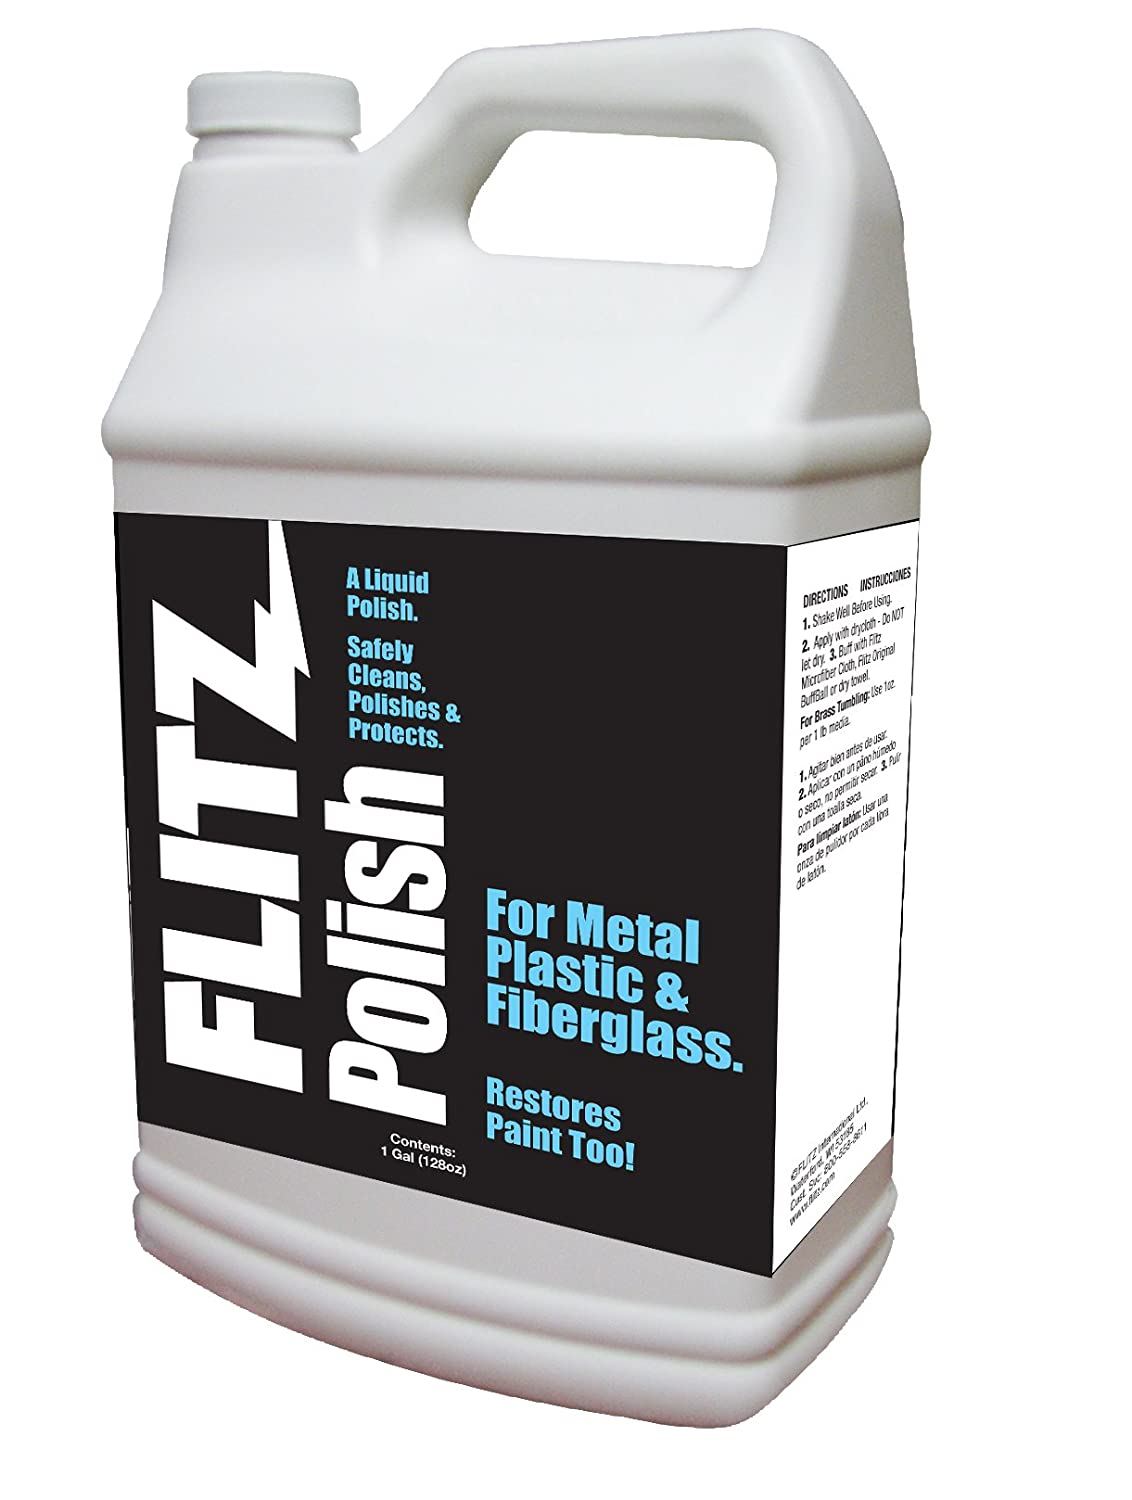 Flitz LQ 04506 Green Metal, Plastic and Fiberglass Polish Liquid, 16-Ounce Bottle